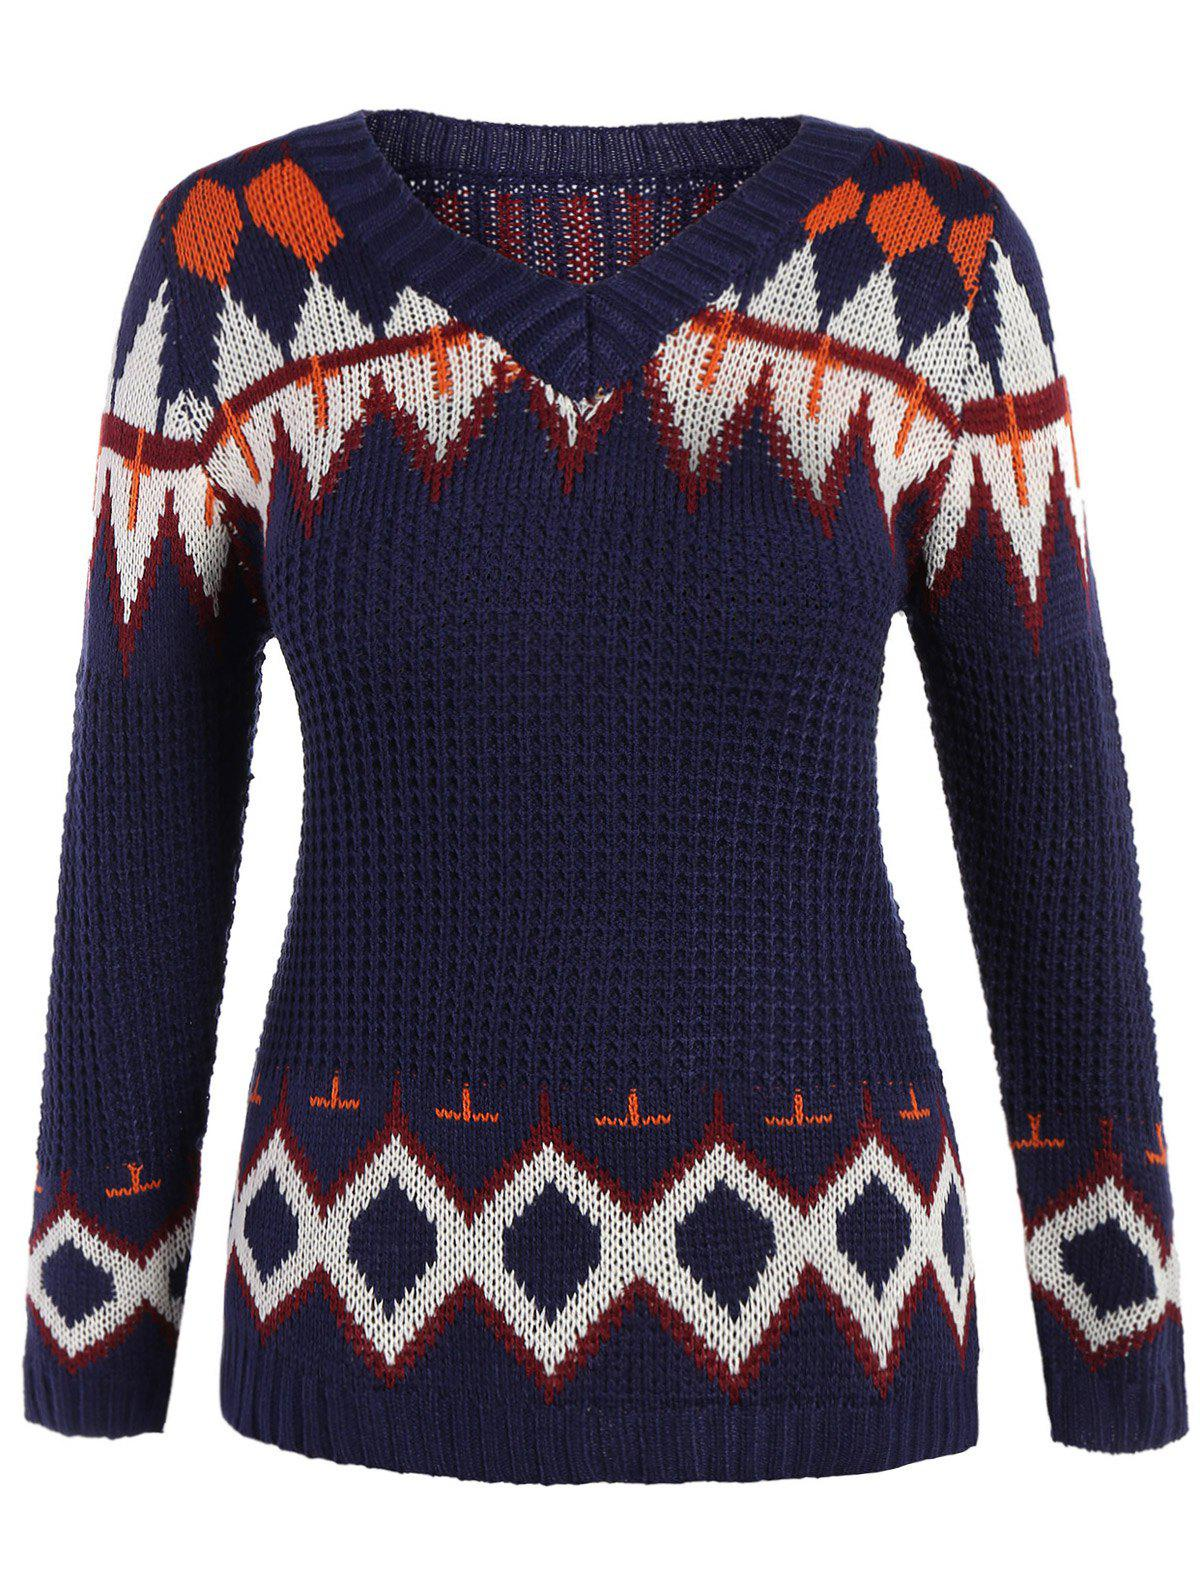 New V Neck Graphic Plus Size Pullover Sweater